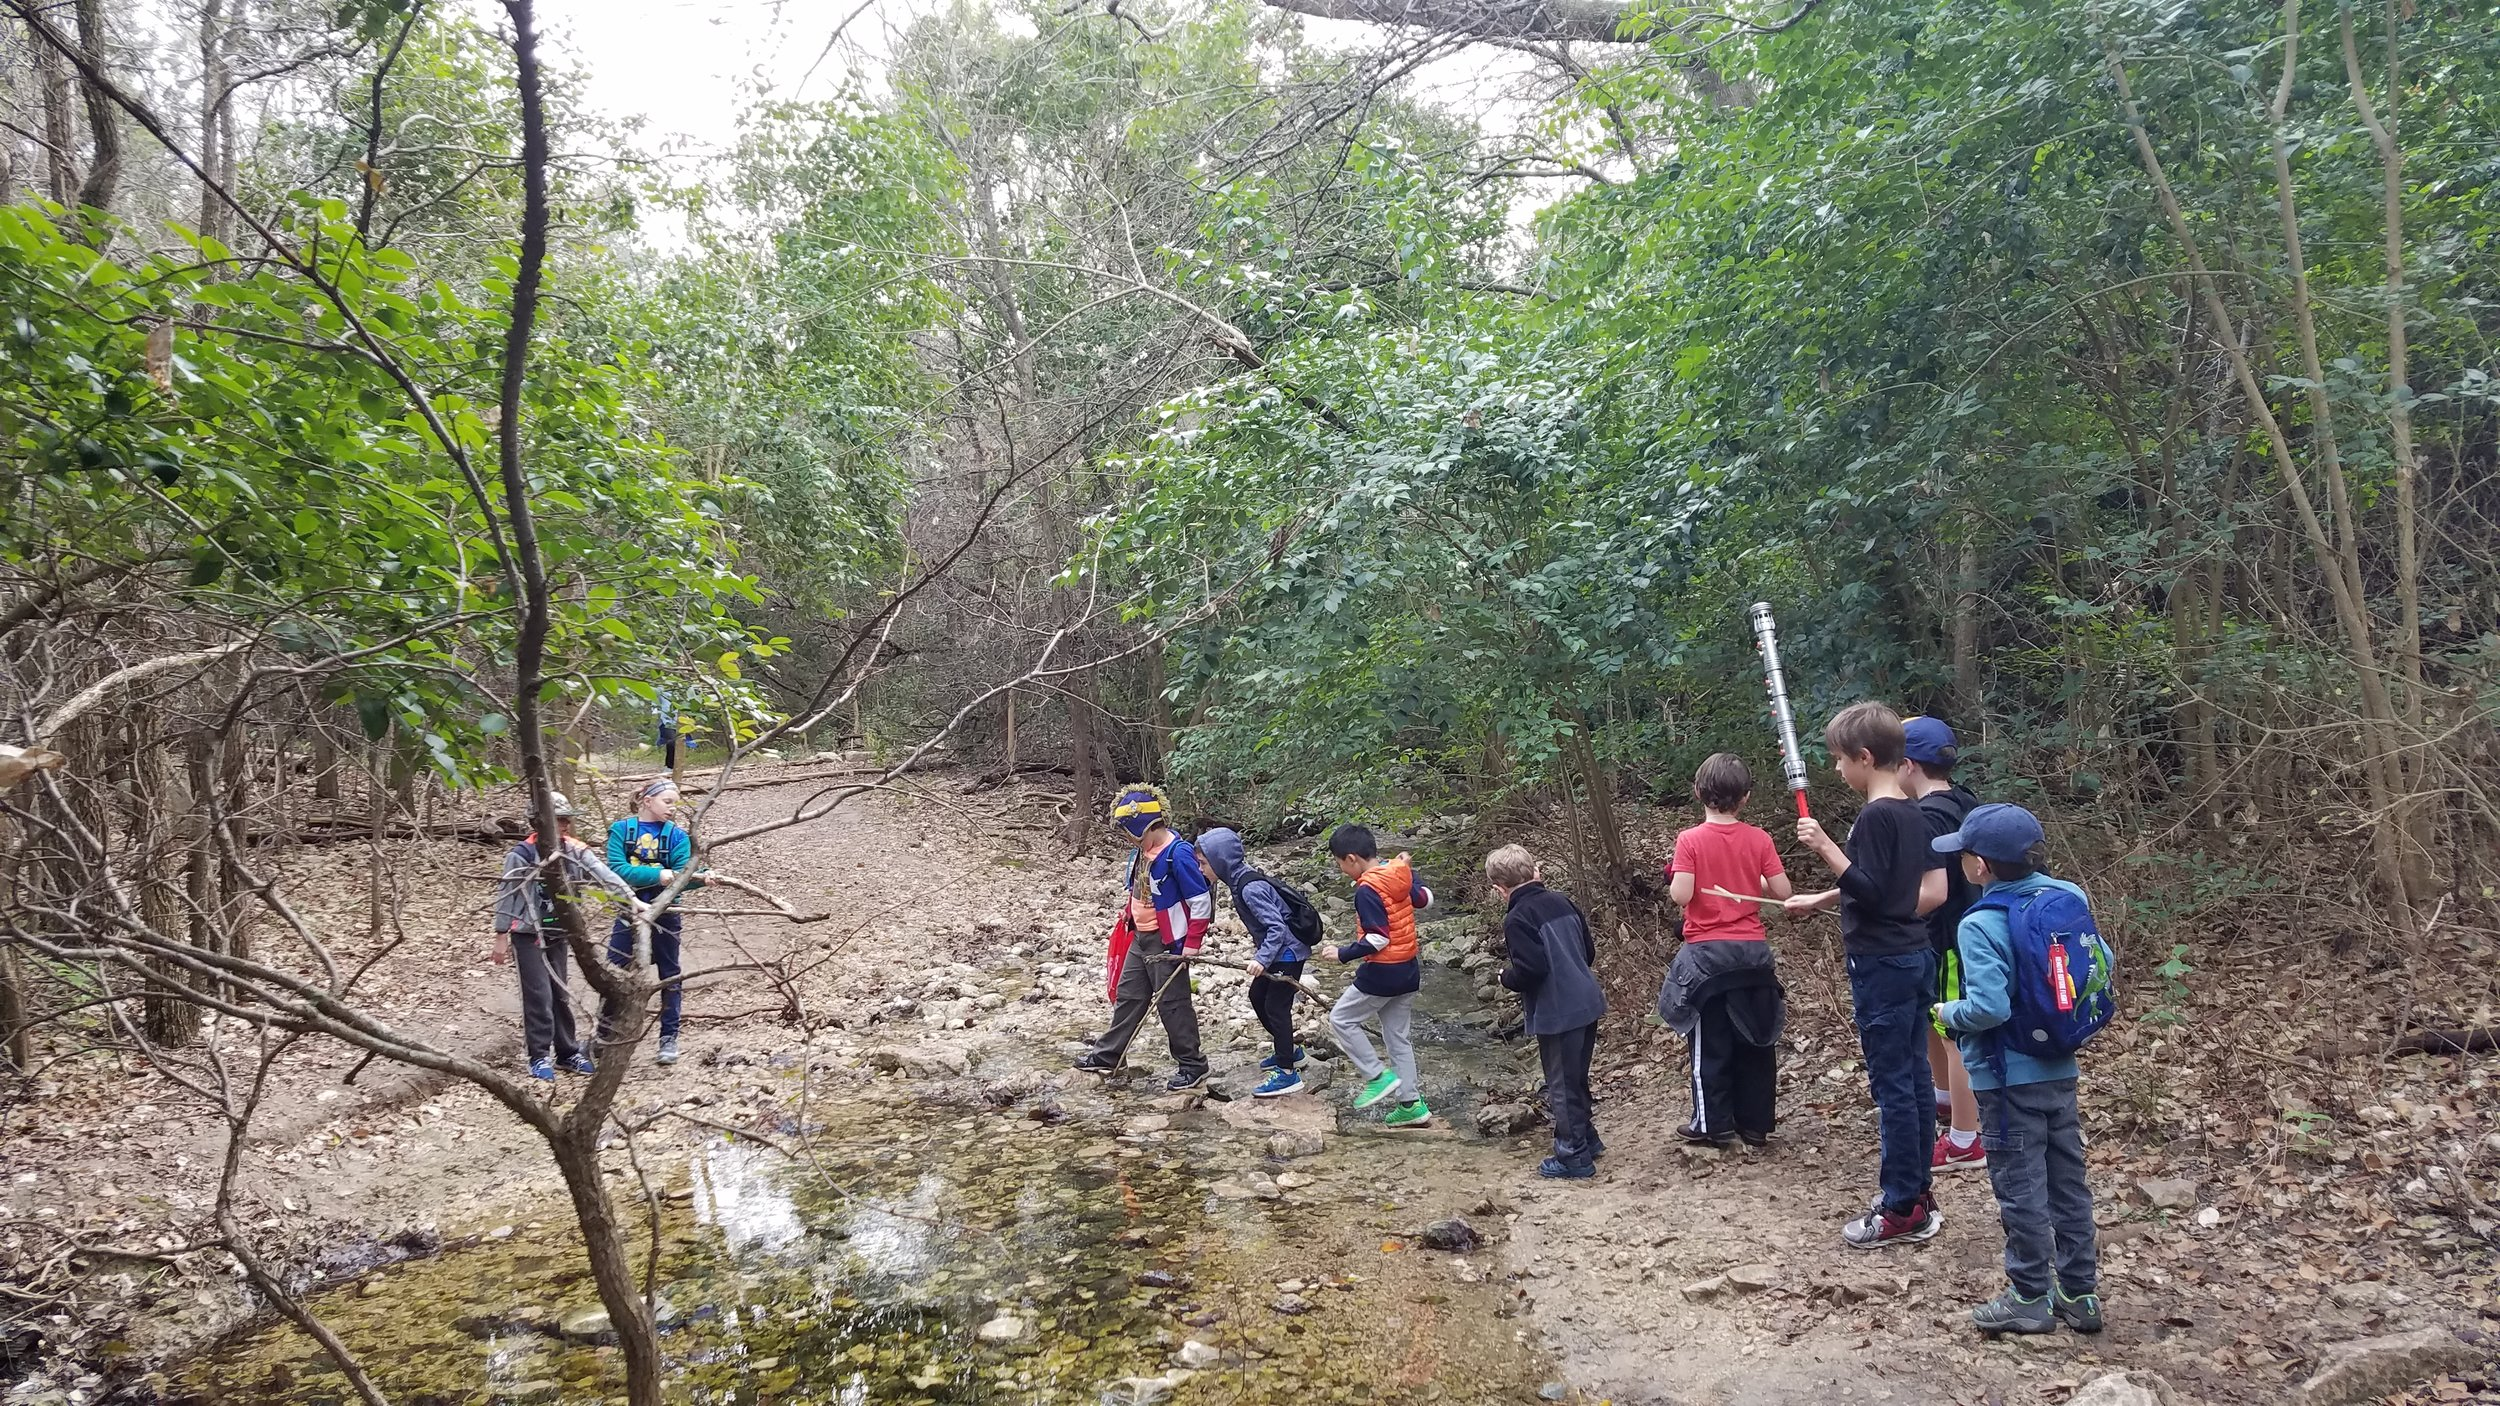 Cub Scouts enjoy crossing a small stream on Great Hills Trail.